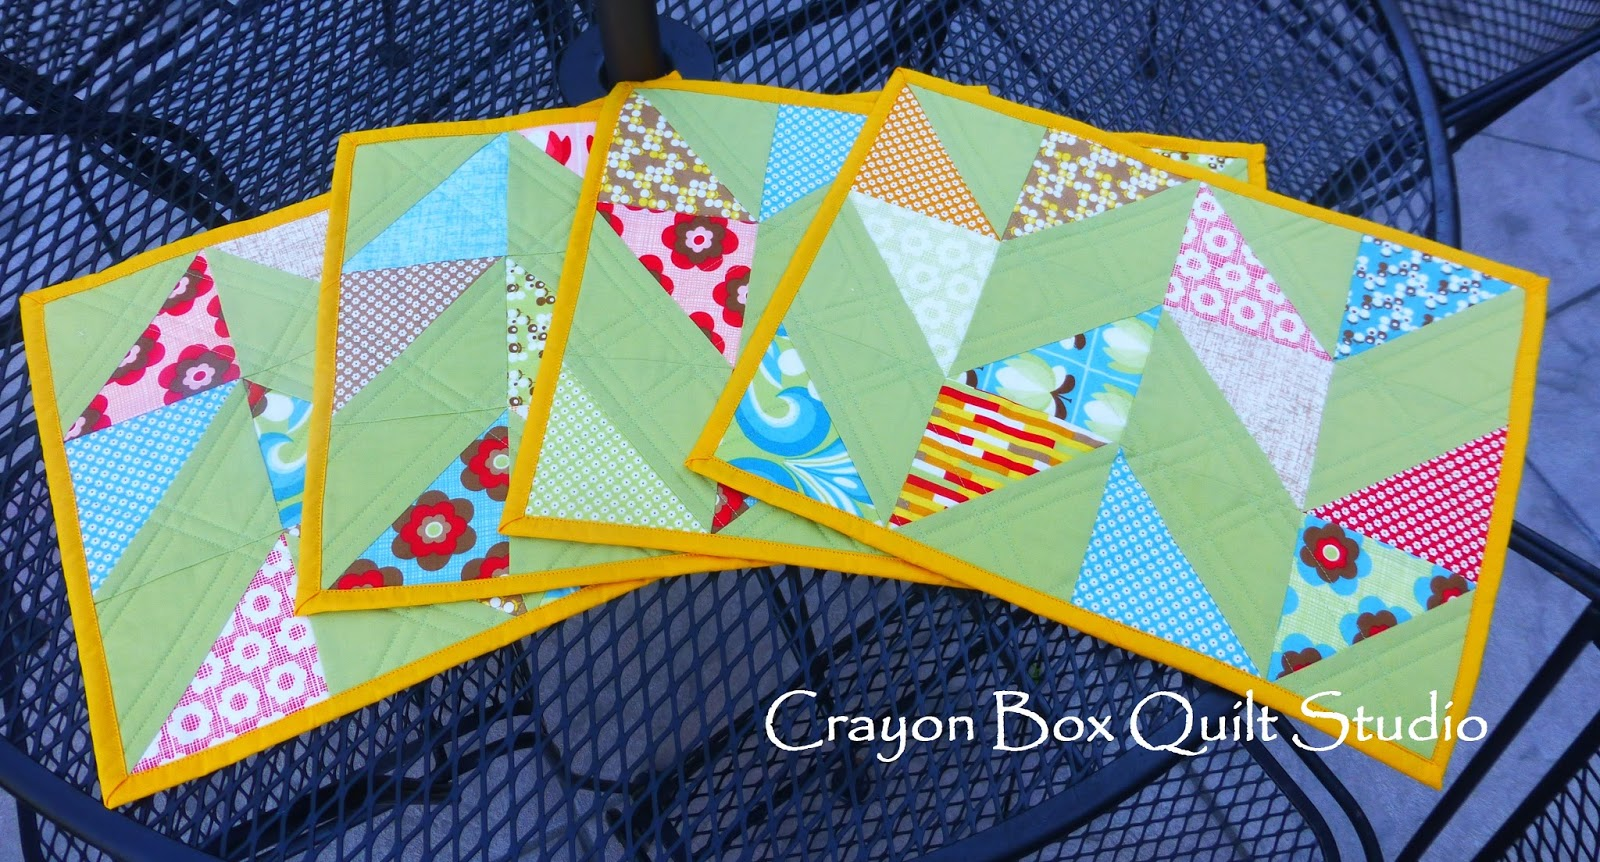 Crayon Box Quilt Studio Completed Quilts Amp Projects